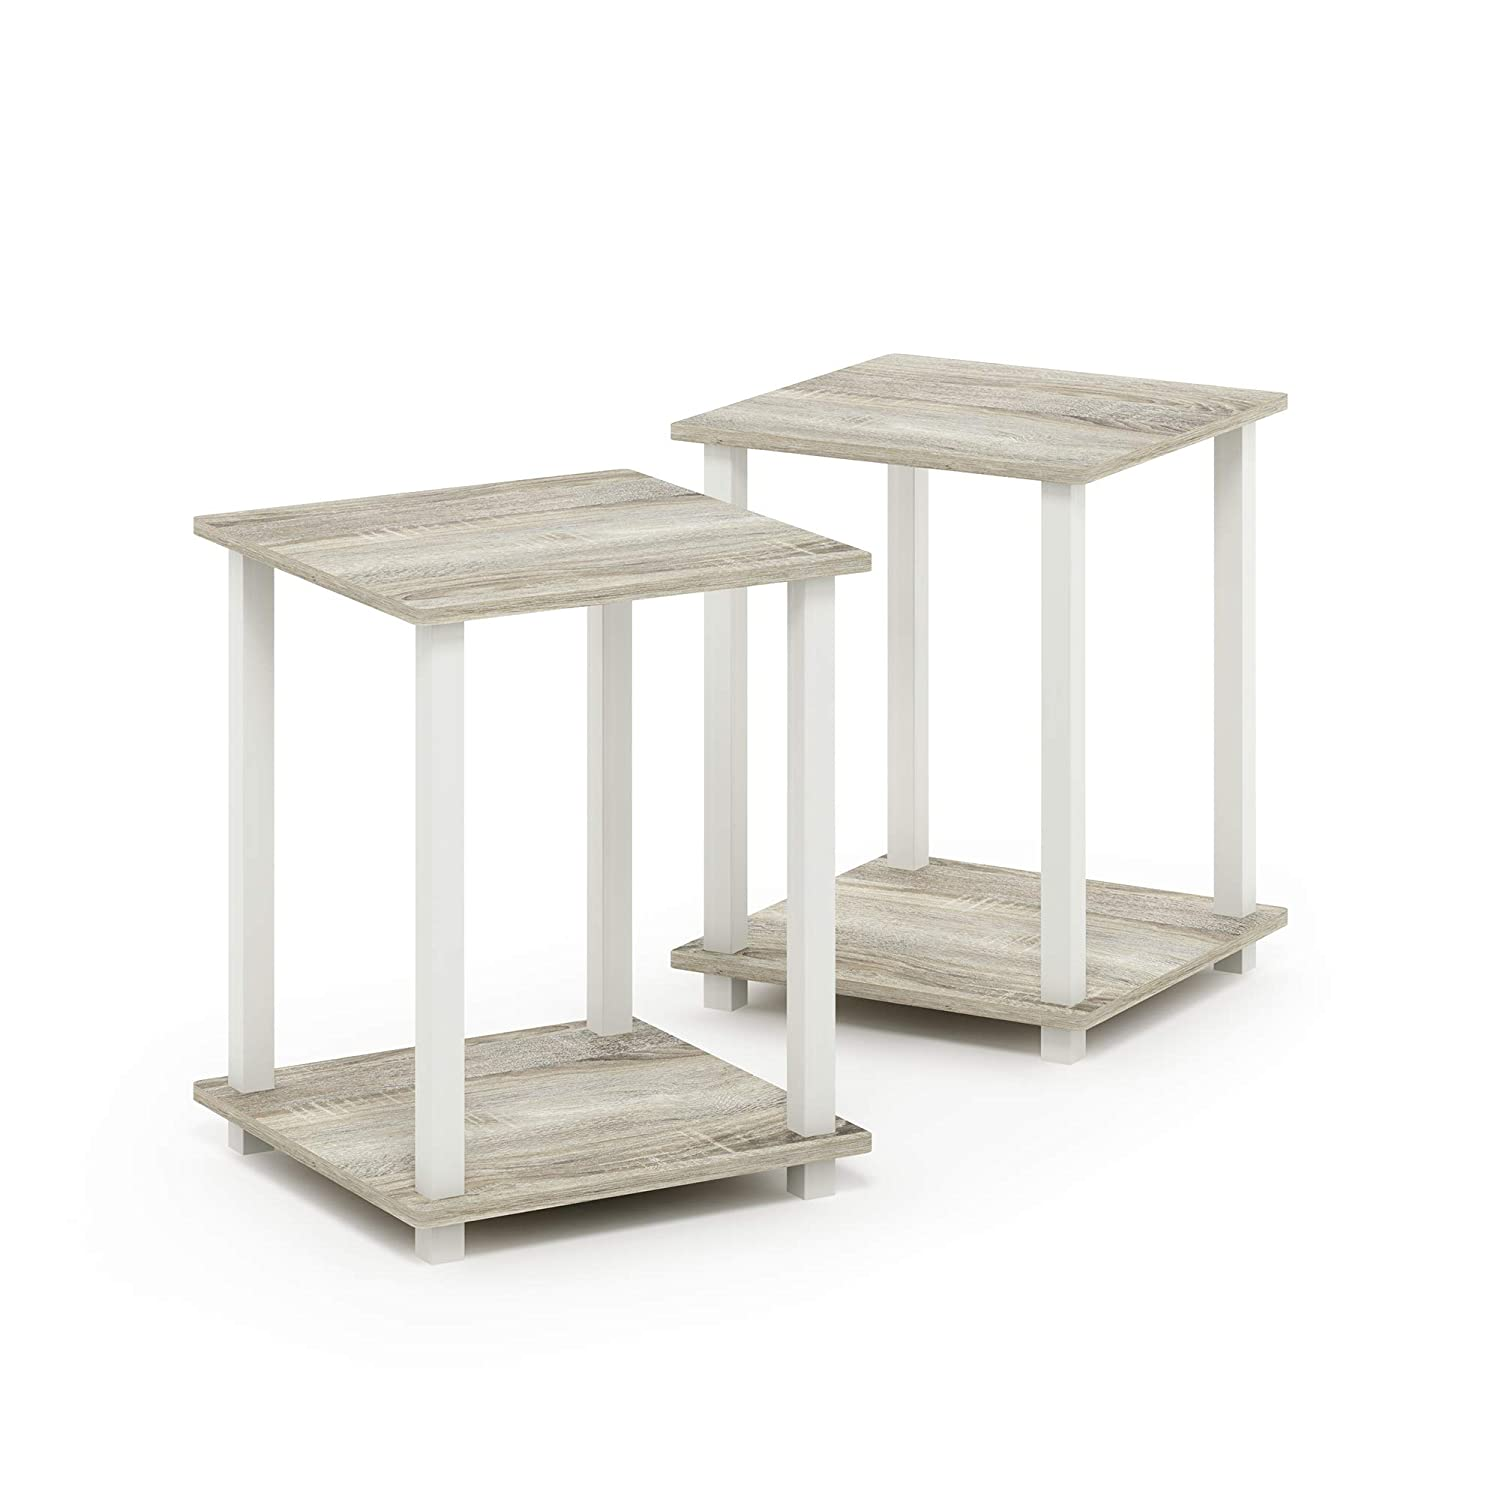 Furinno 12127OK/WH Simplistic End Table Set of Two, Sonoma Oak/White